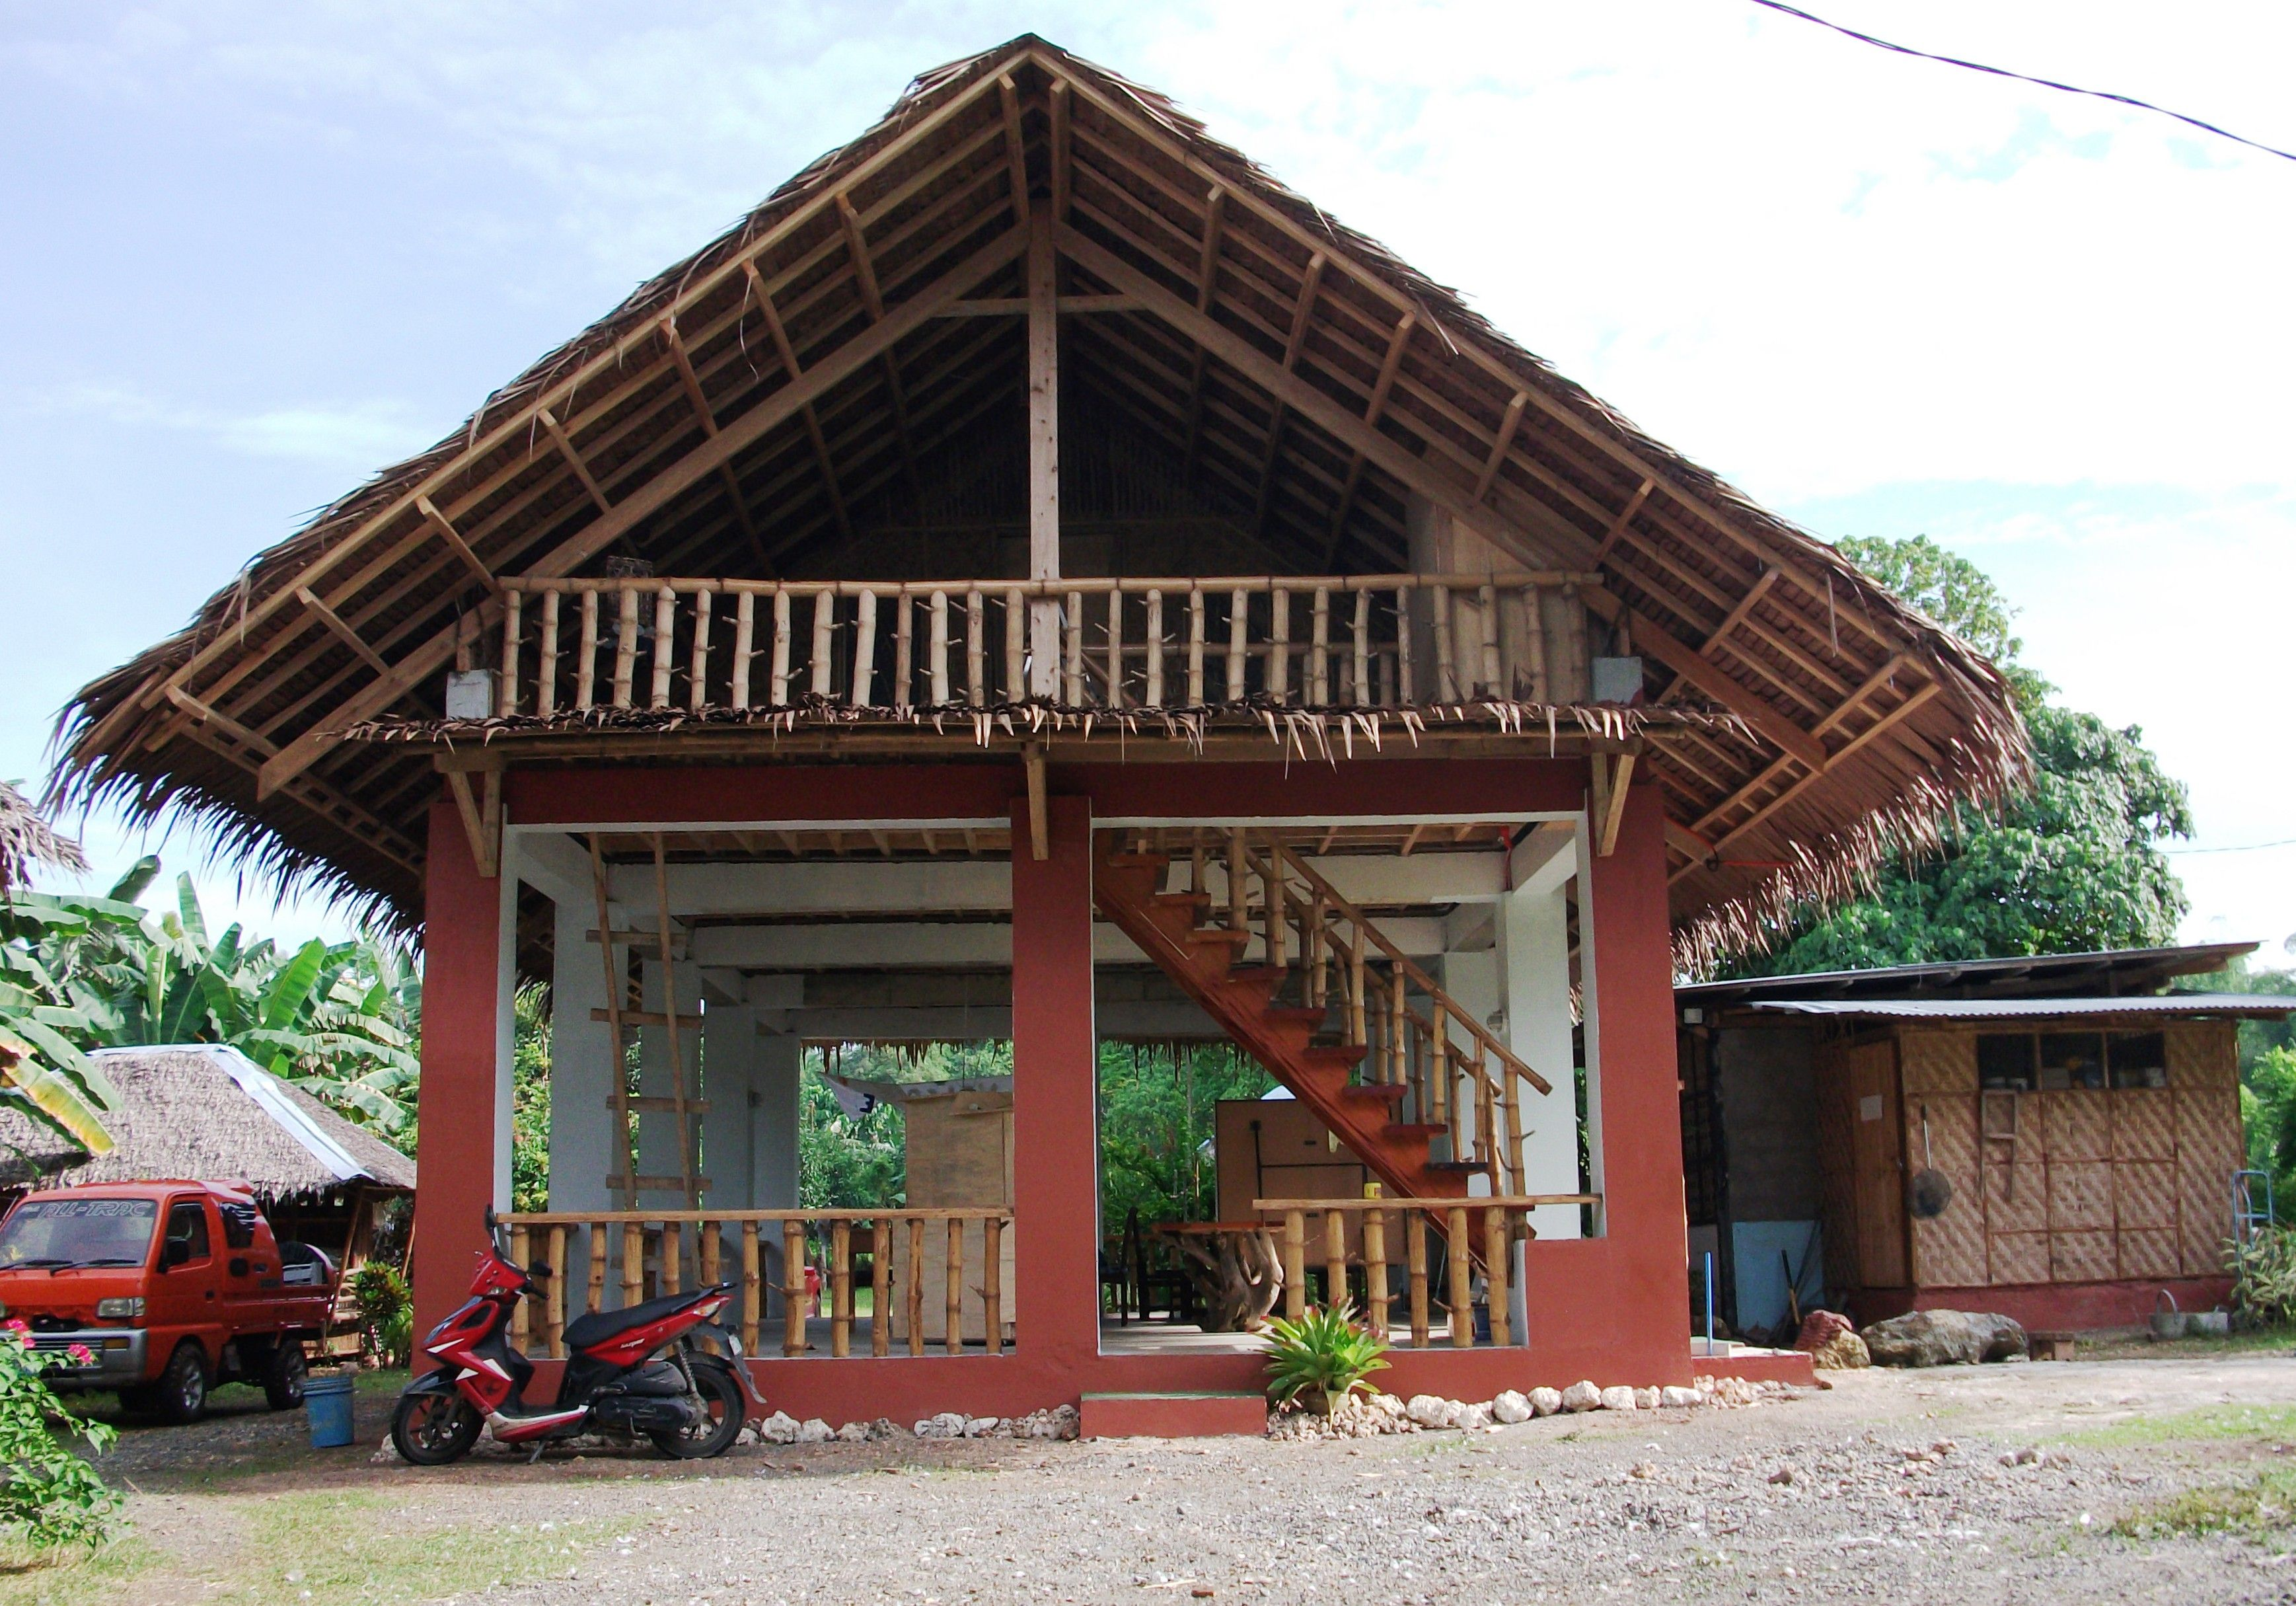 Native House Design In The Philippines | hiqra | Pinterest ... on rest house in tagaytay, rest house nigeria, rest house in cebu, rest house carcar, rest house design, rest house boracay, rest house in bangladesh,